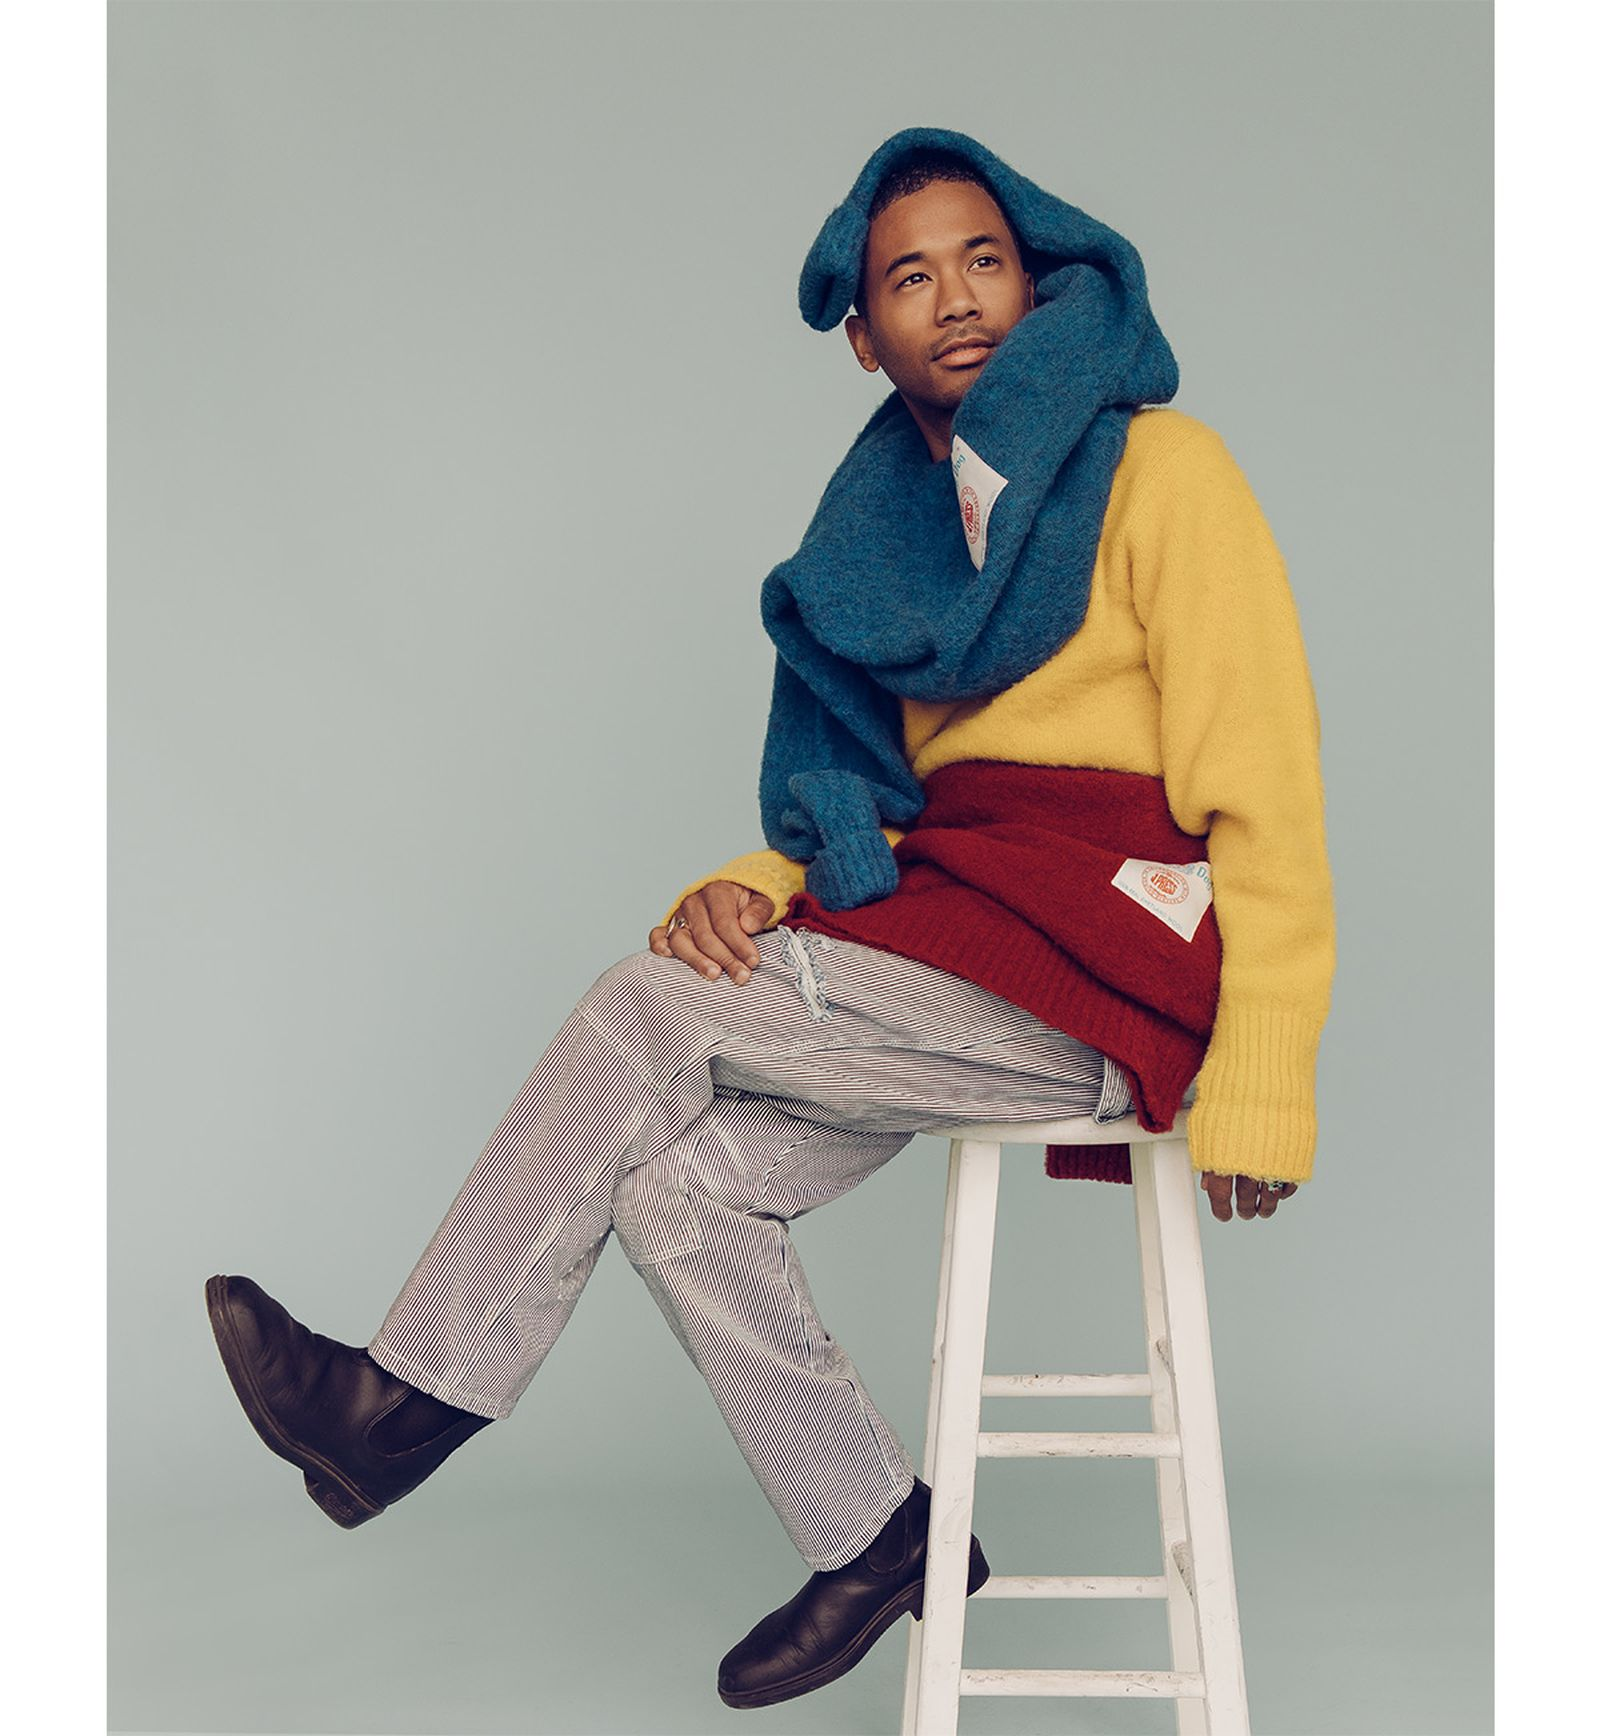 toro y moi outer peace interview chaz bear